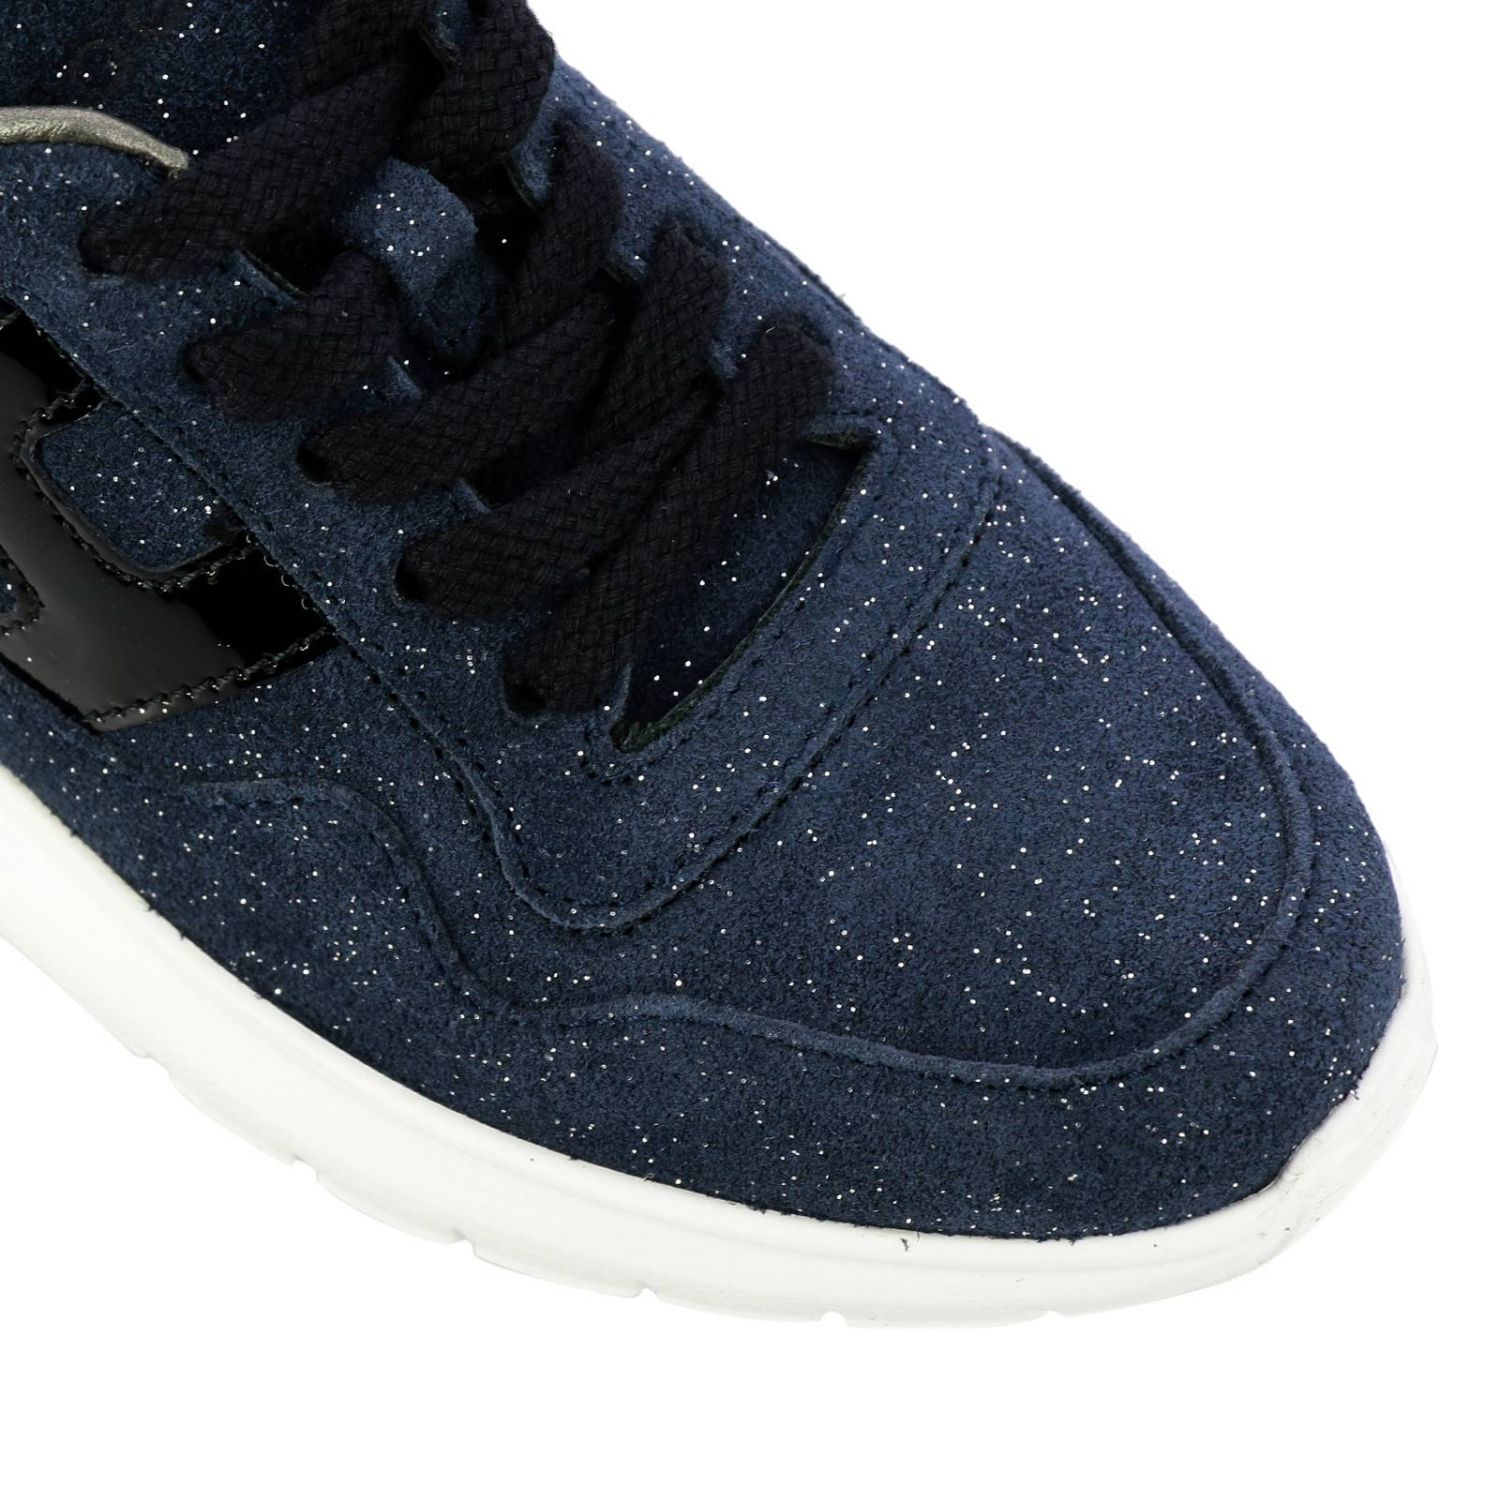 Cube Hogan glitter suede sneakers with patent leather H blue 4